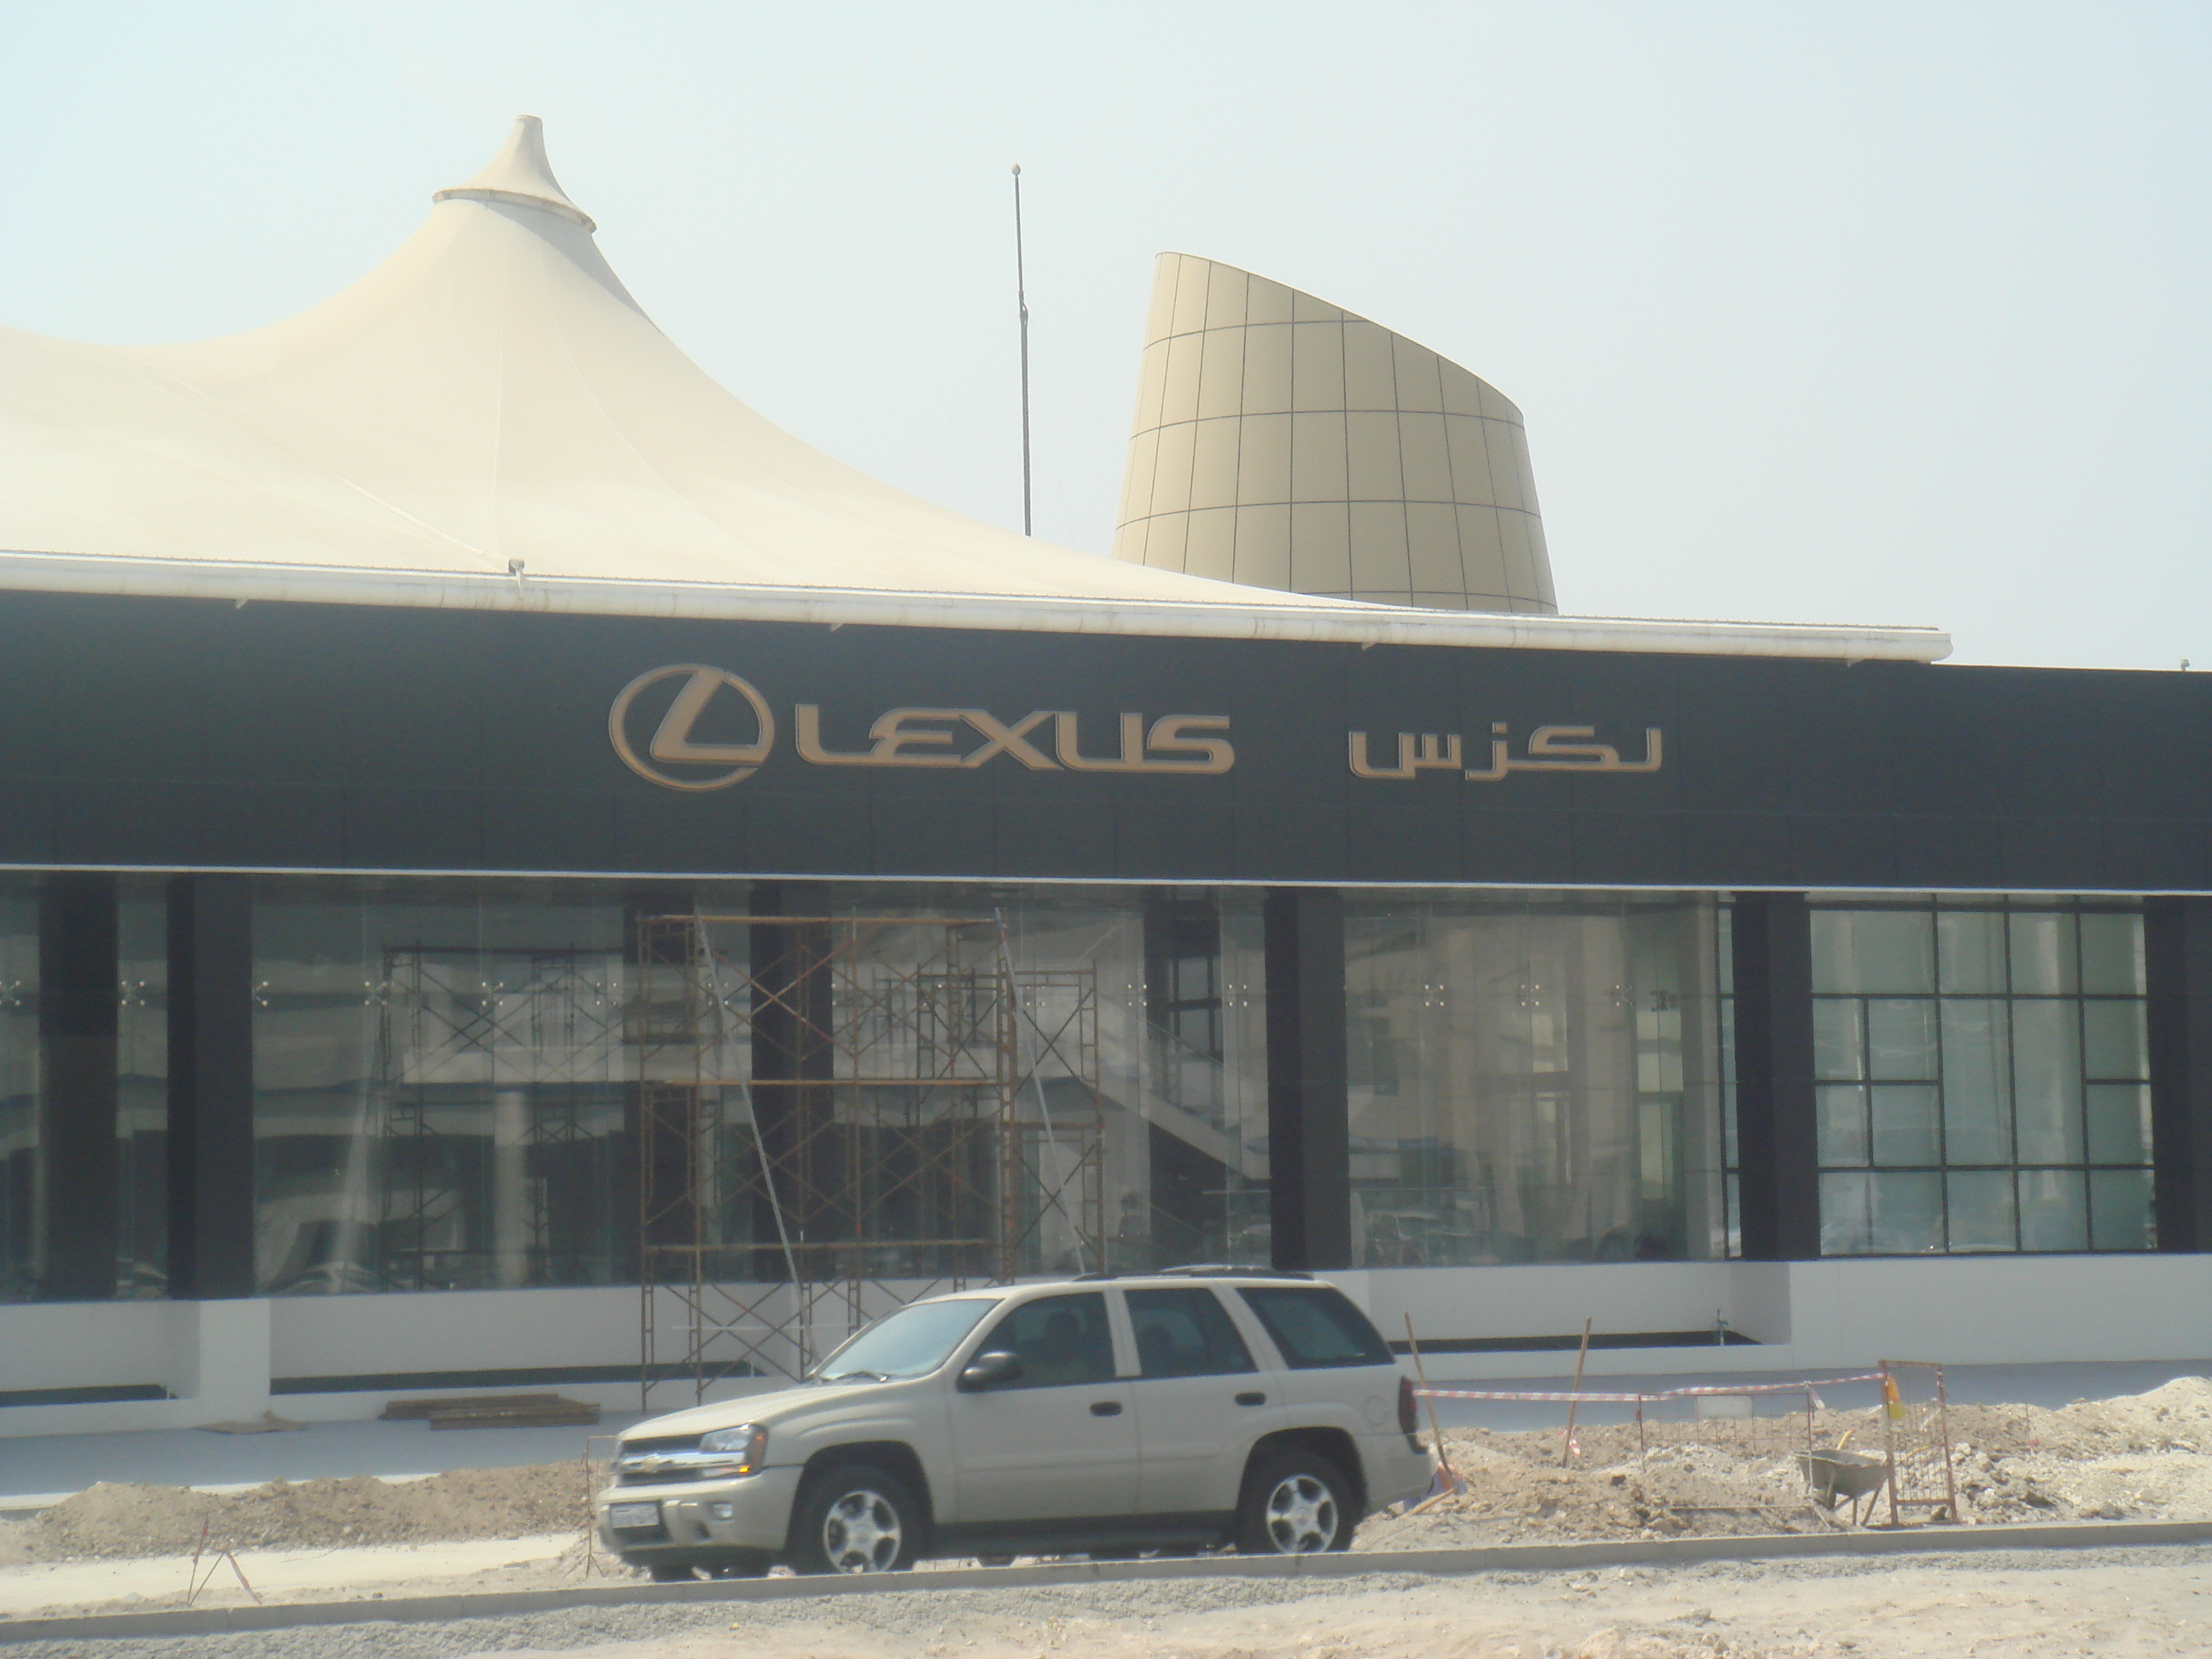 Lexus Showroom for M/s E.K. Kanoo